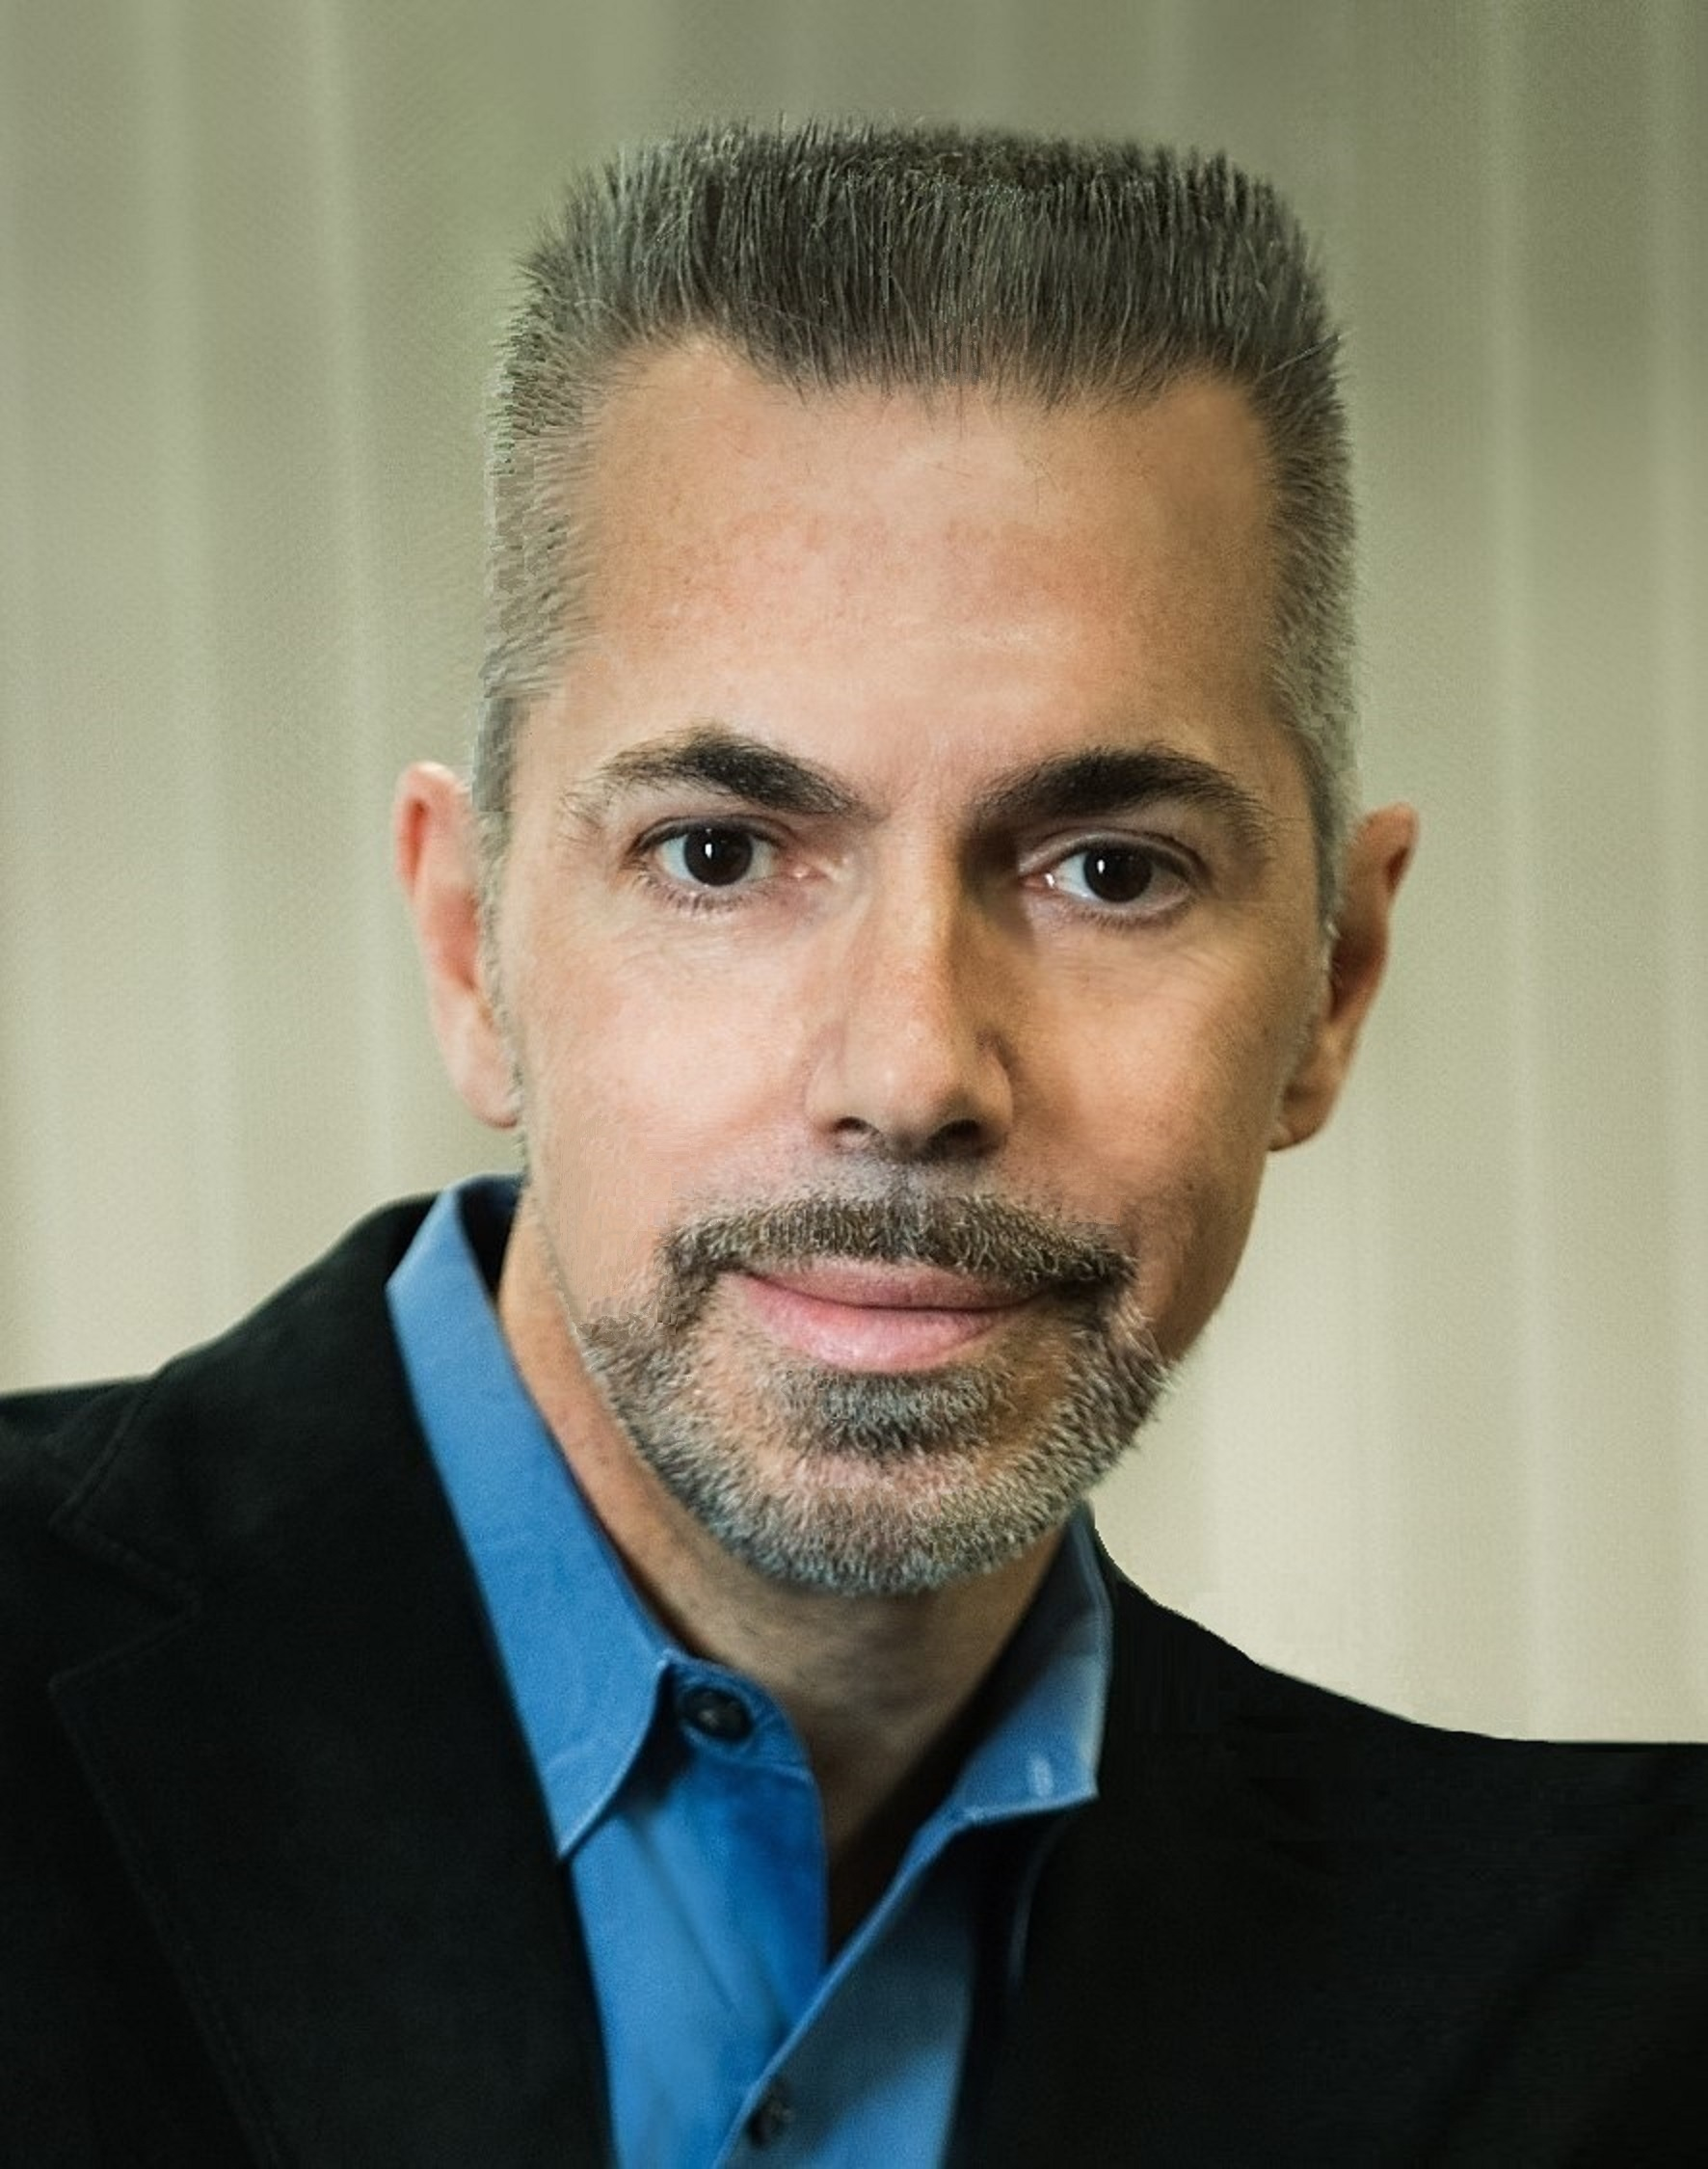 Headshot photo of Dr. Robert Lanza